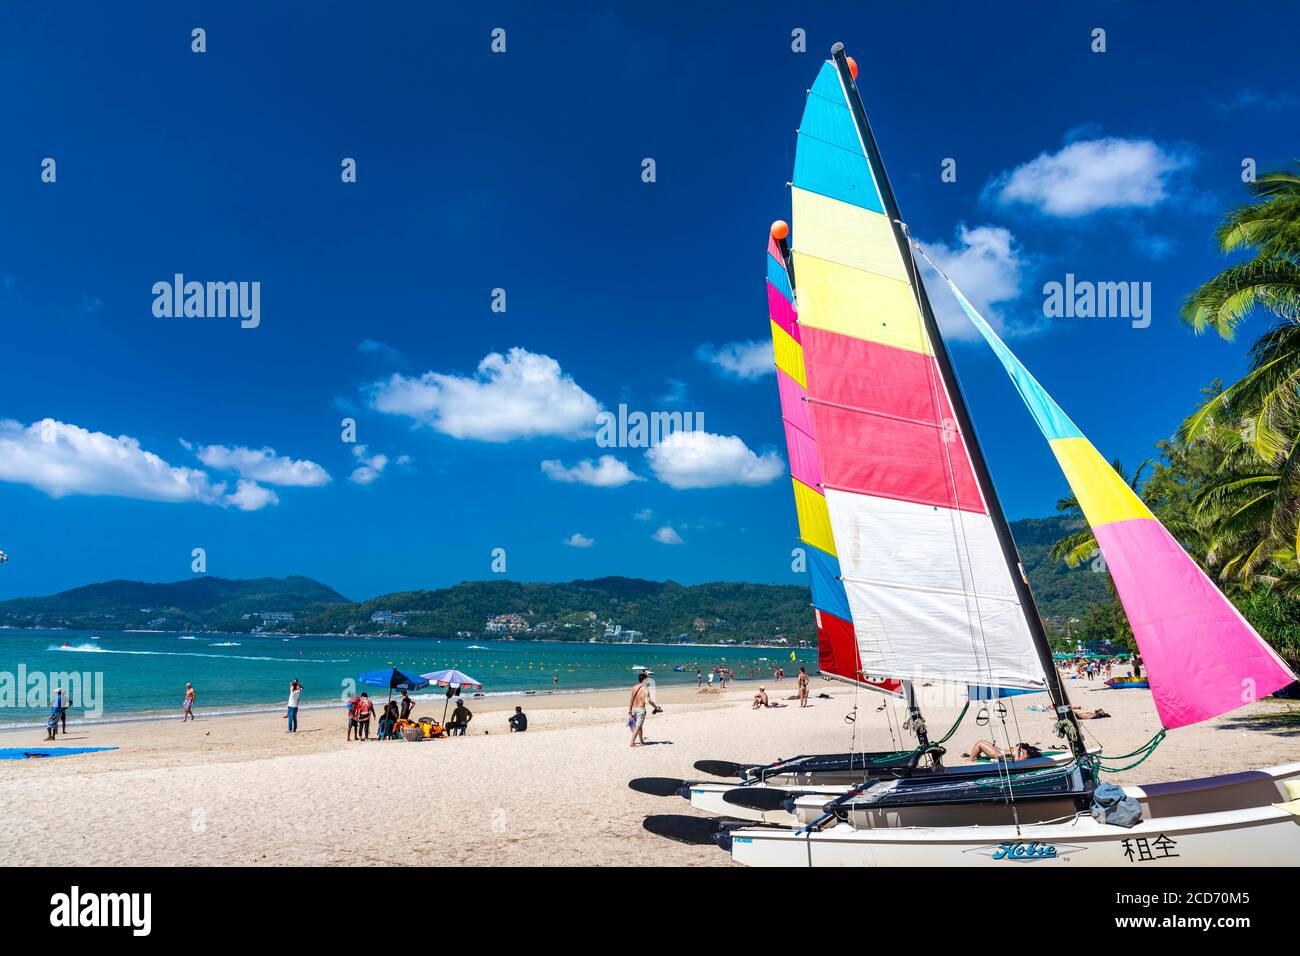 Boats for hire on the beach at Patong, Phuket, Thailand Stock Photo